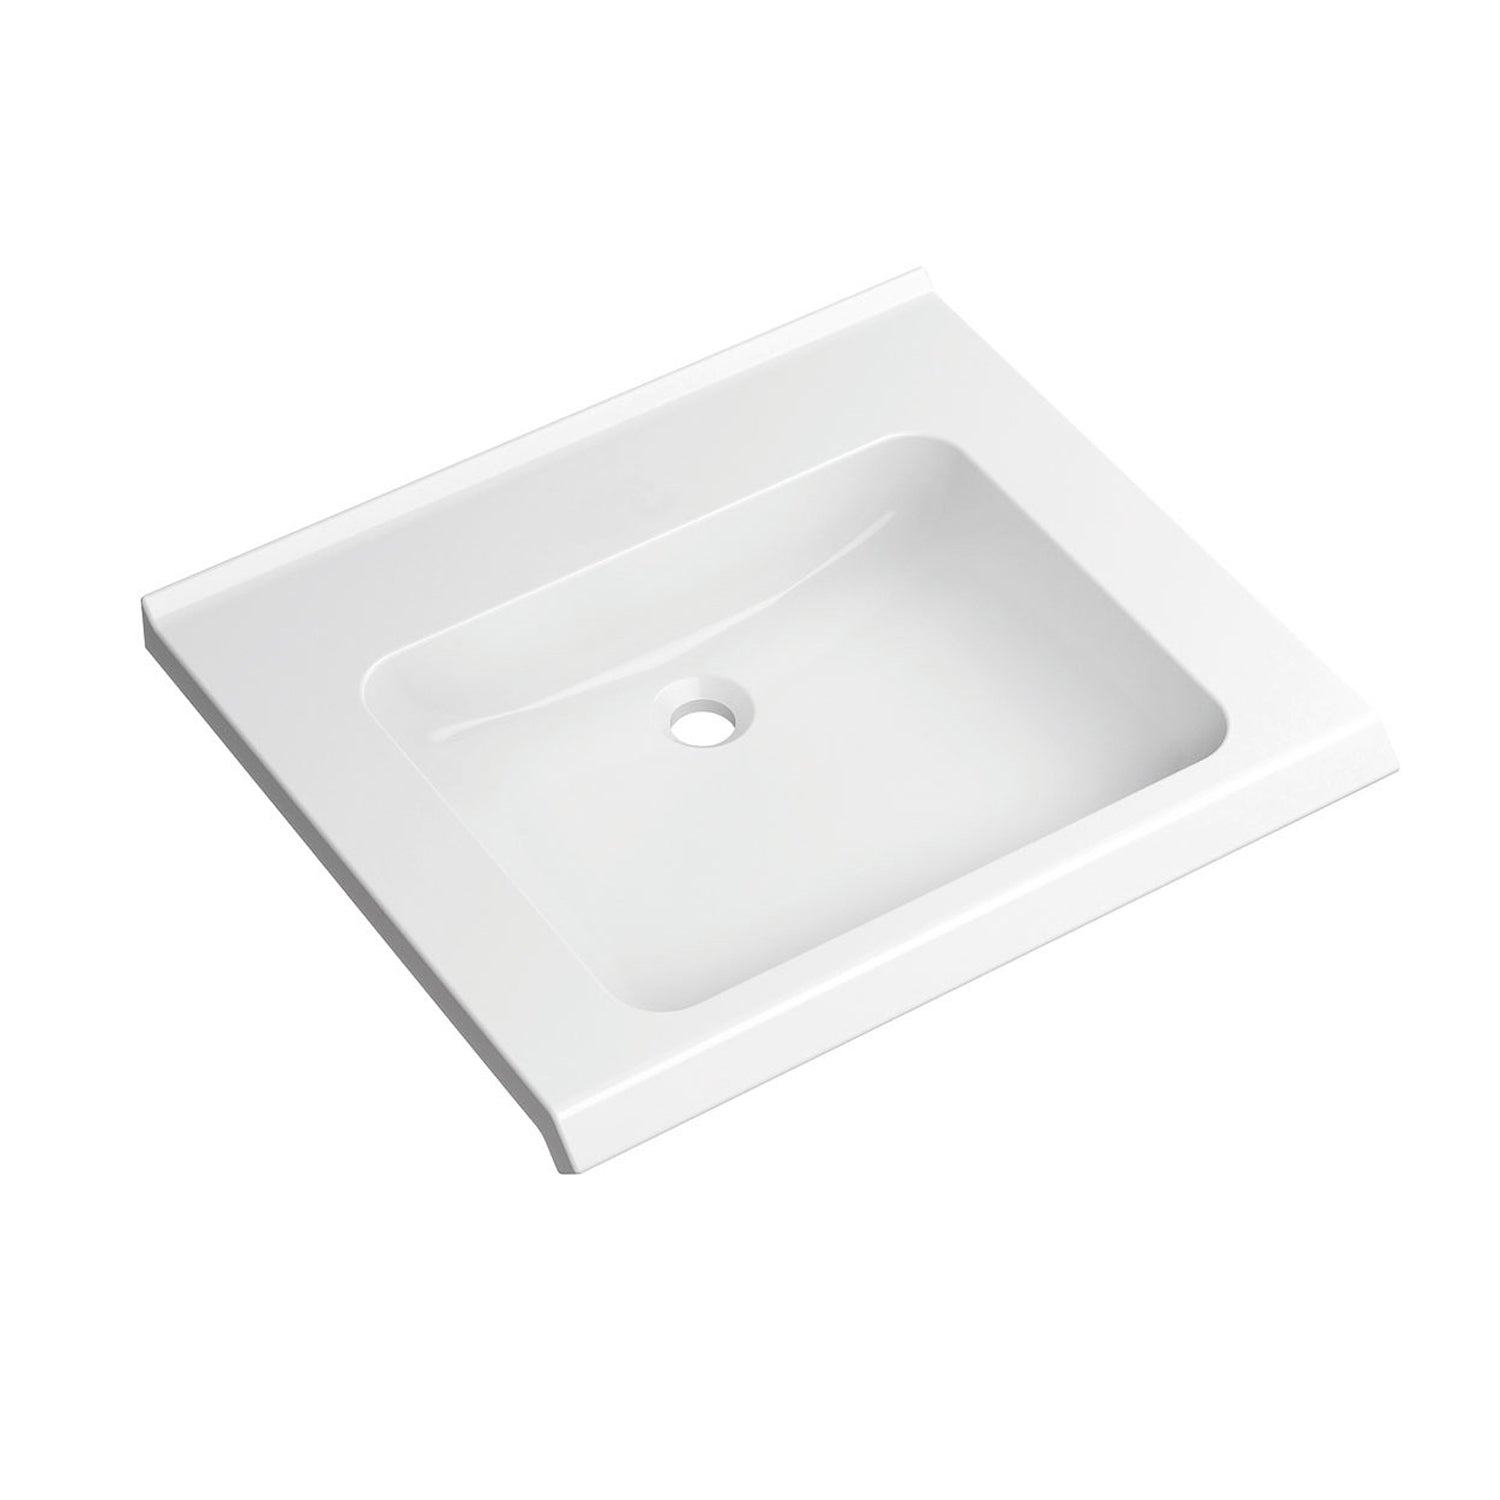 650mm SurfaceHold Wall Hung Basin with no tap hole on a white background